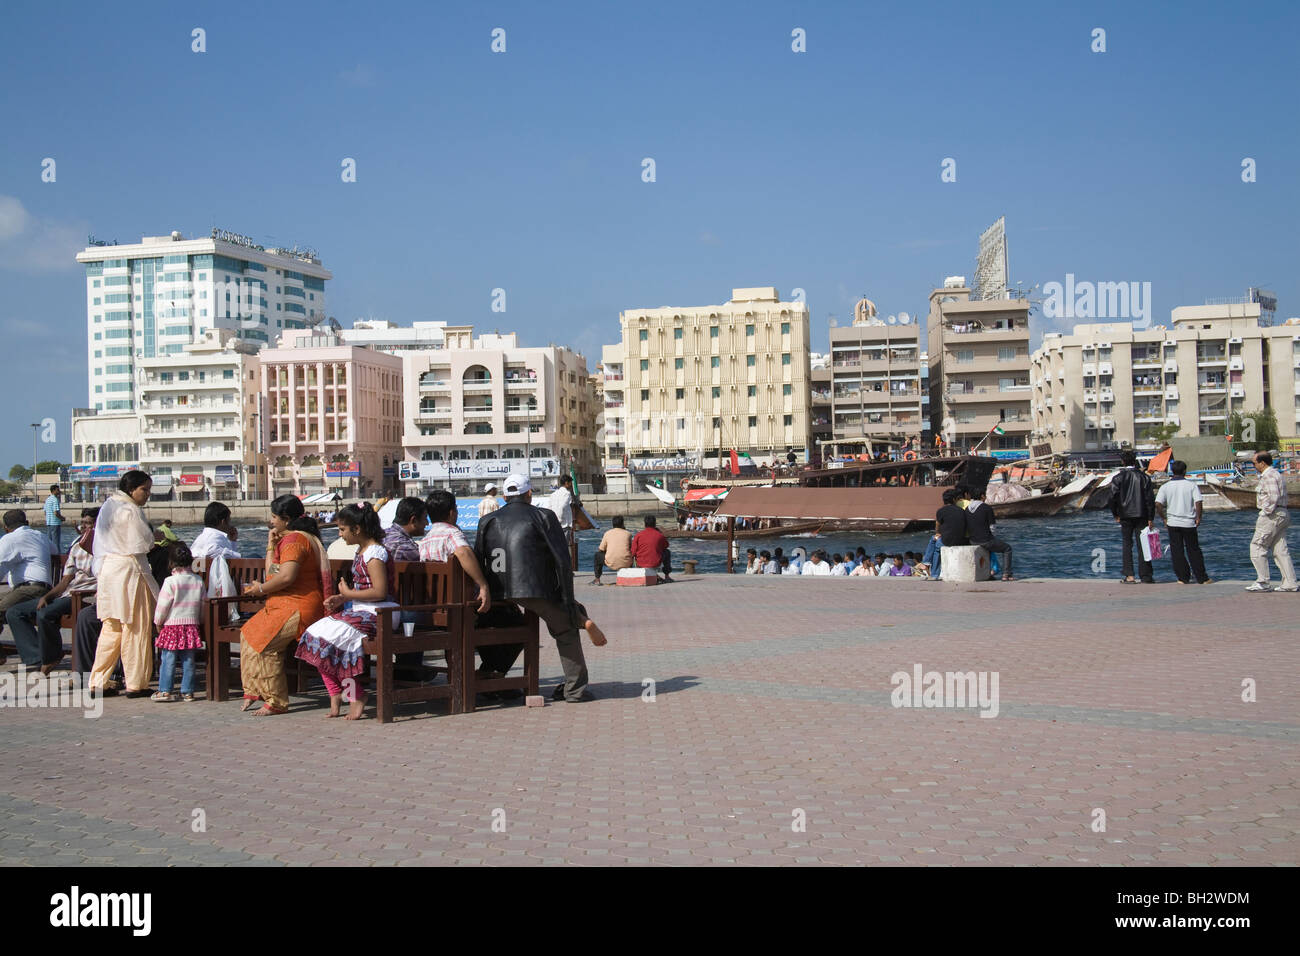 Dubai United Arab Emirates Group of Indians sitting outside in the sunshine on wooden benches with views across Stock Photo